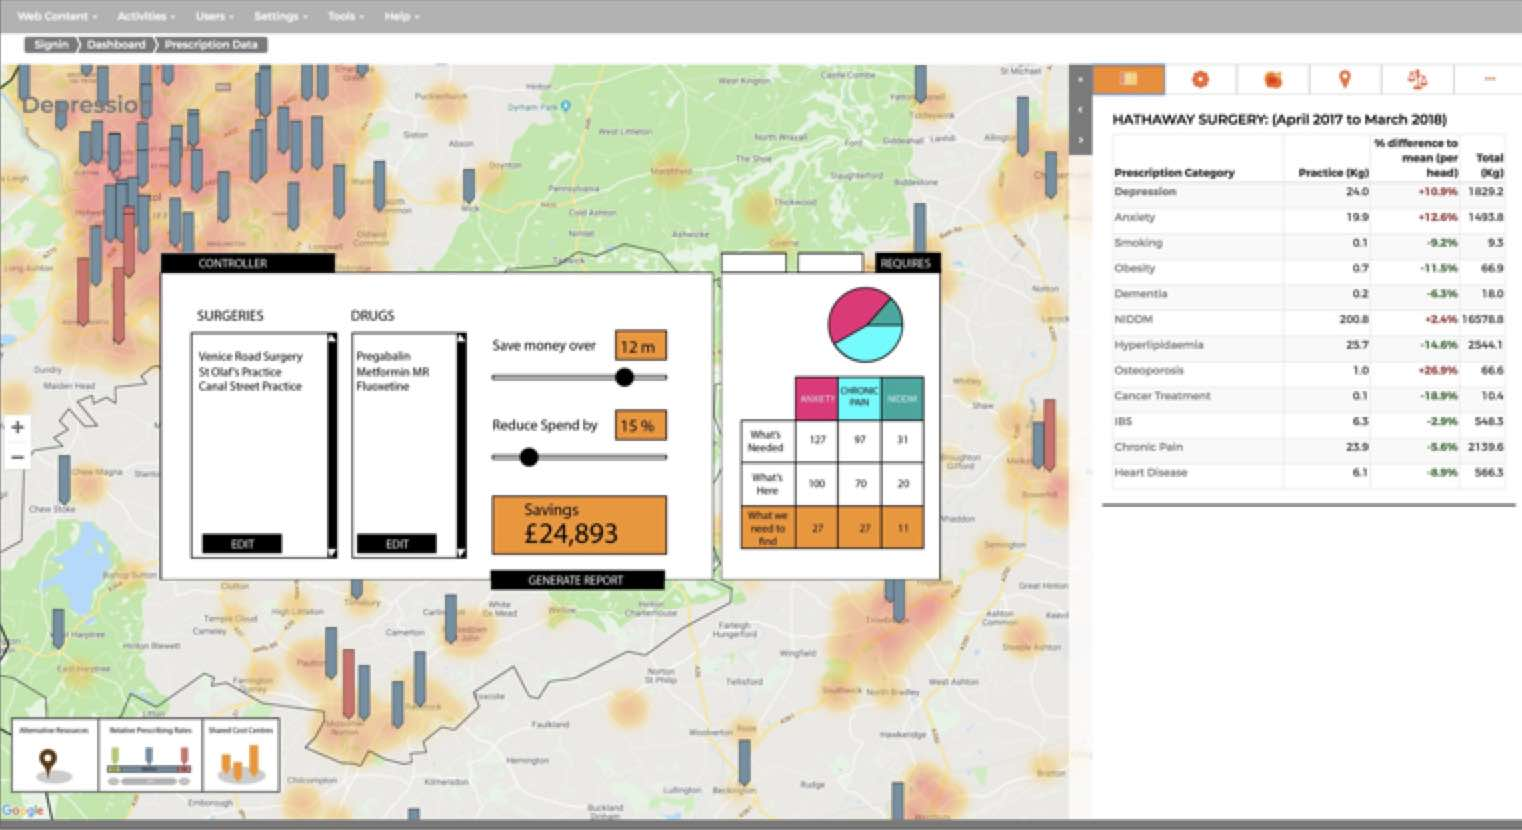 The smart calculator wireframe to model real savings in prescribed drugs using SP